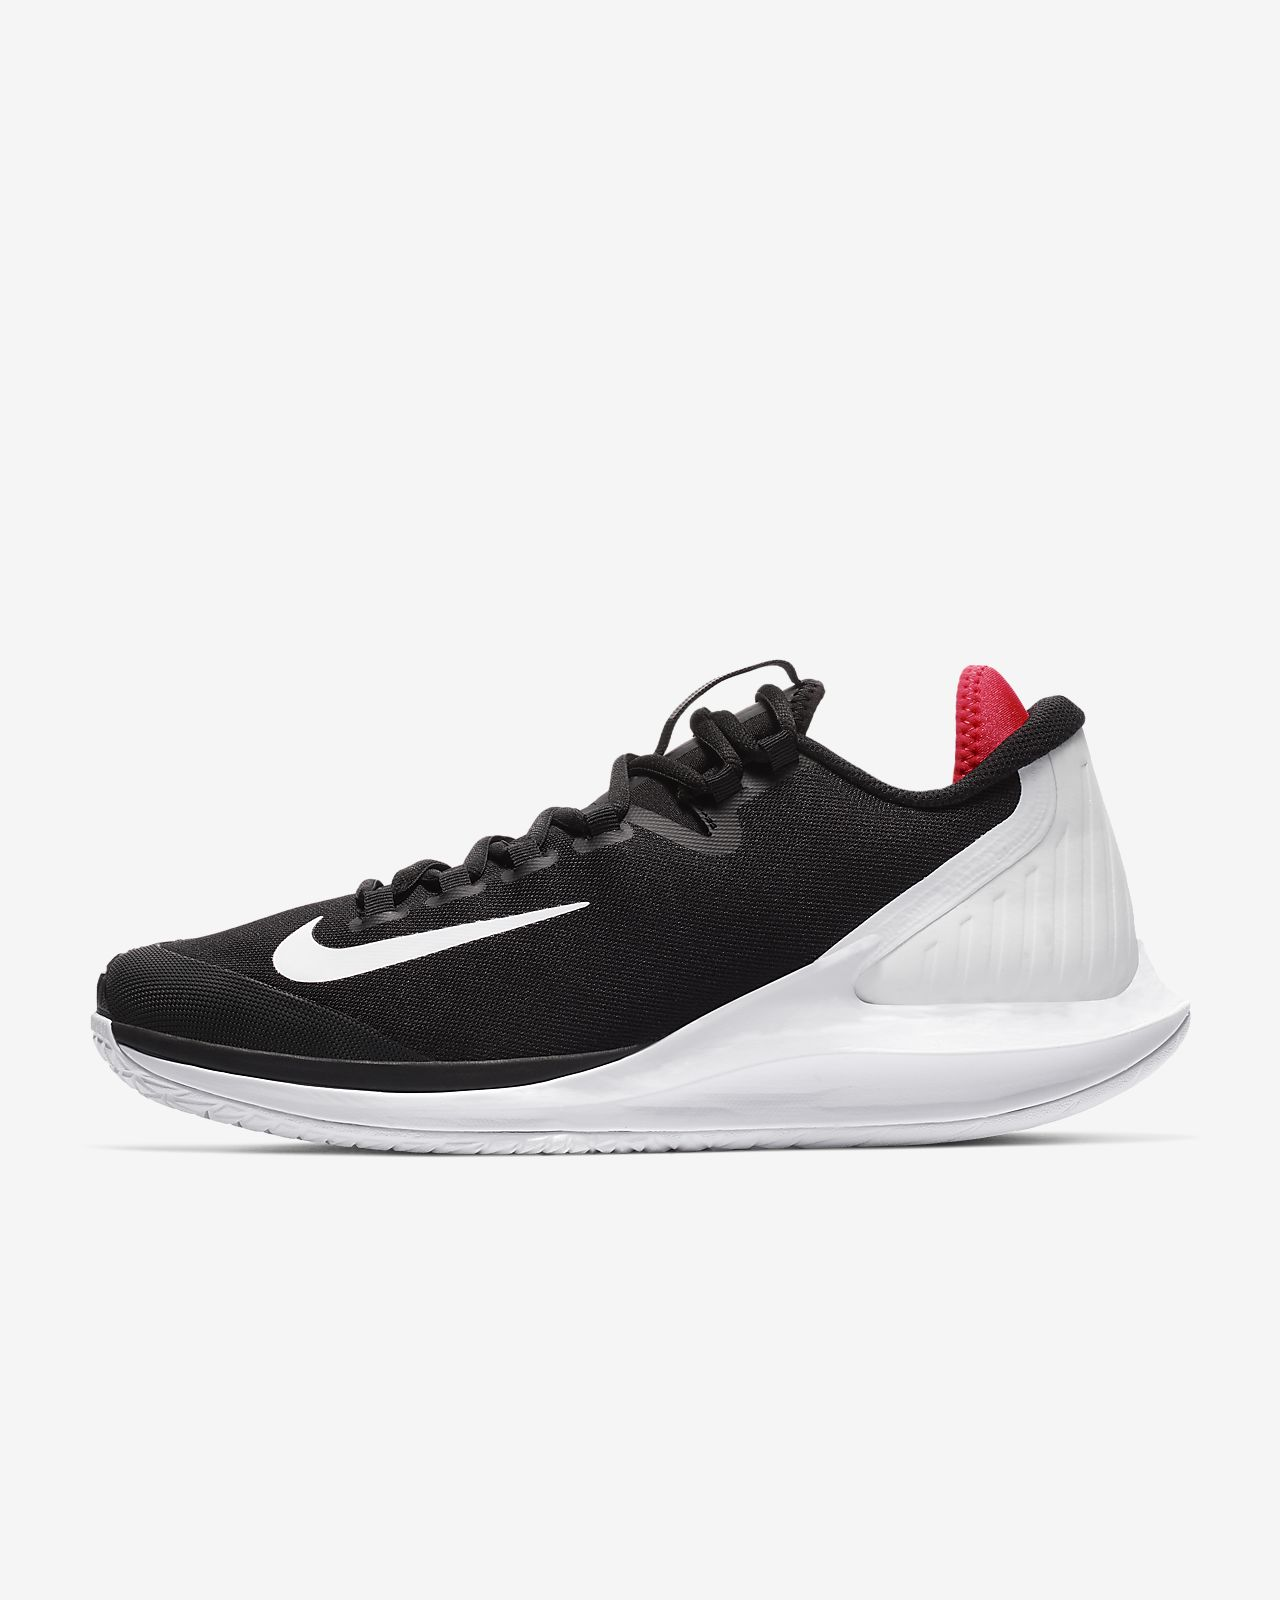 NikeCourt Air Zoom Zero Tennisschoen voor heren